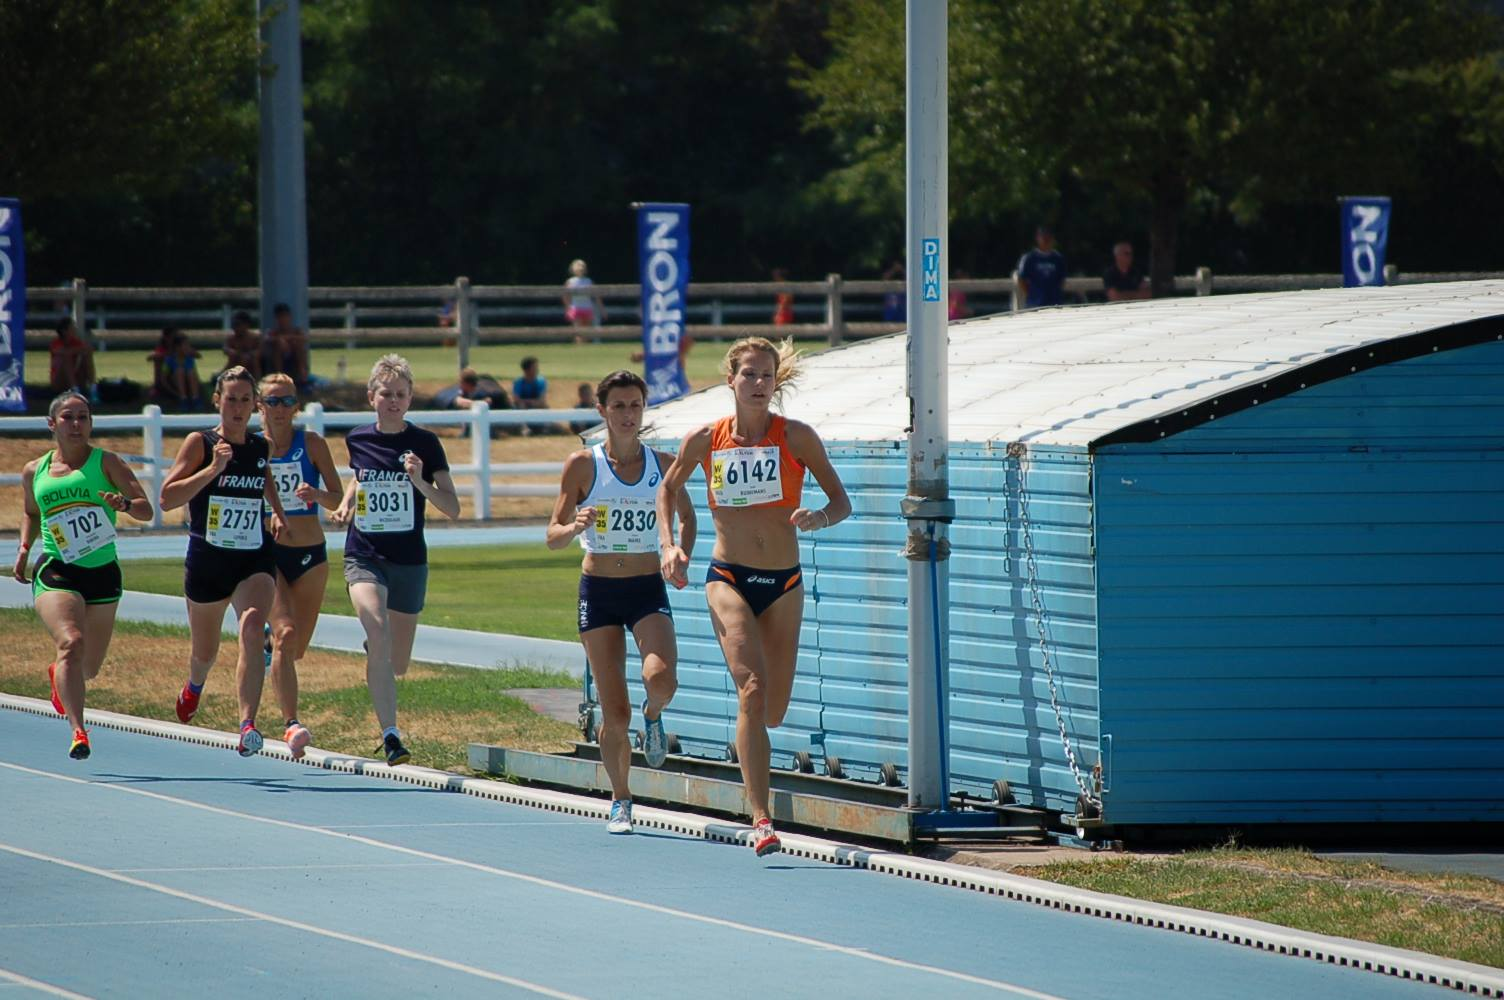 Jazlin Ruinemans neemt de kop in de series 800m (copyright Paul Wolters)